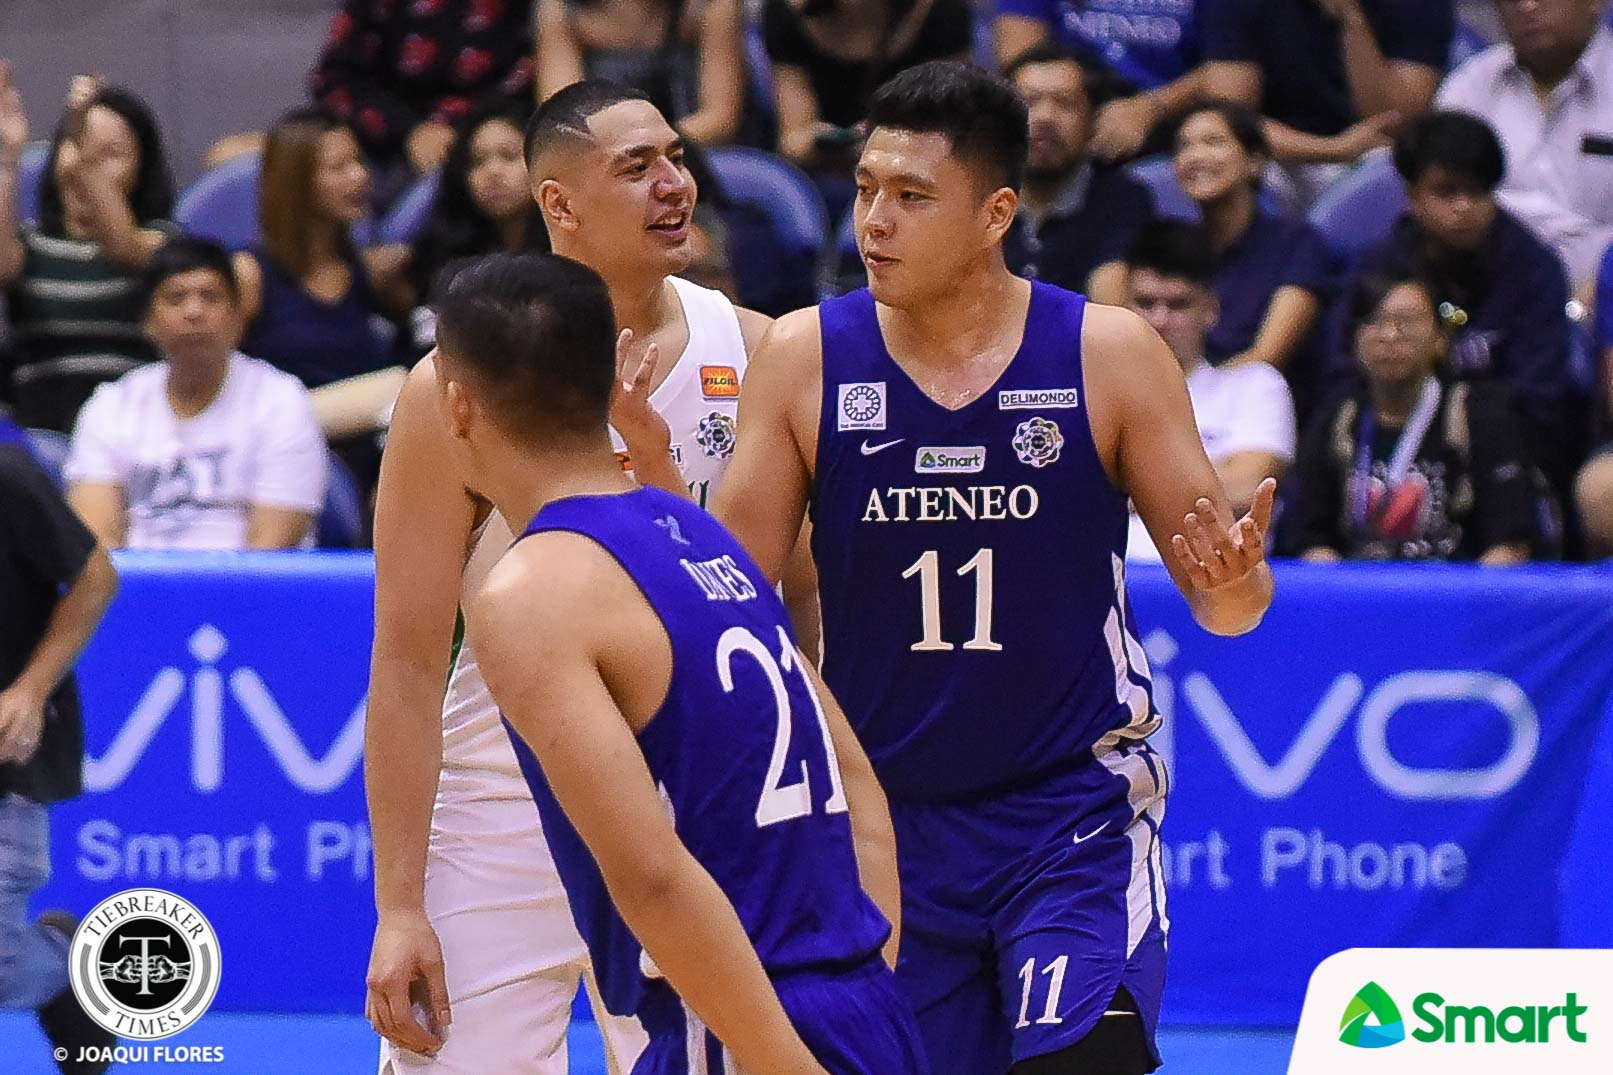 Tiebreaker Times Taane Samuel makes immediate impression on Isaac Go ADMU Basketball DLSU News UAAP  UAAP Season 81 Men's Basketball UAAP Season 81 Taane Samuel Isaac Go DLSU Men's Basketball Ateneo Men's Basketball